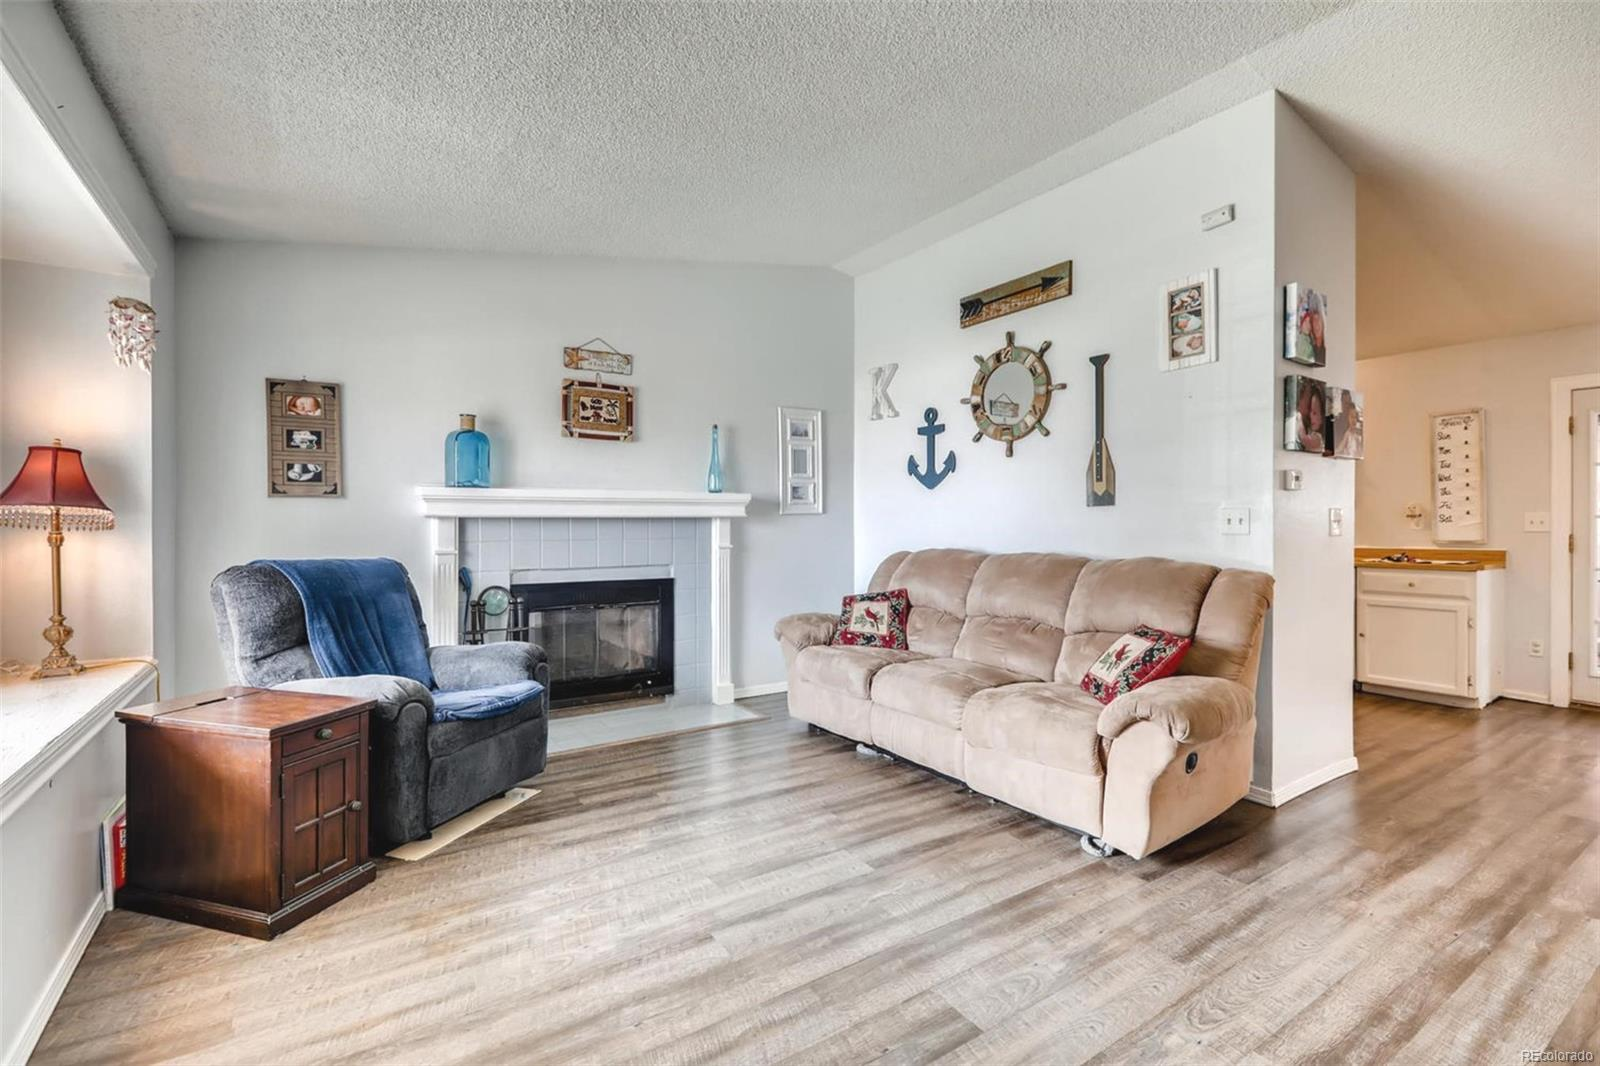 NEW LAMINATE FLOORING IN THE LIVING ROOM, KITCHEN & DINING AREA!